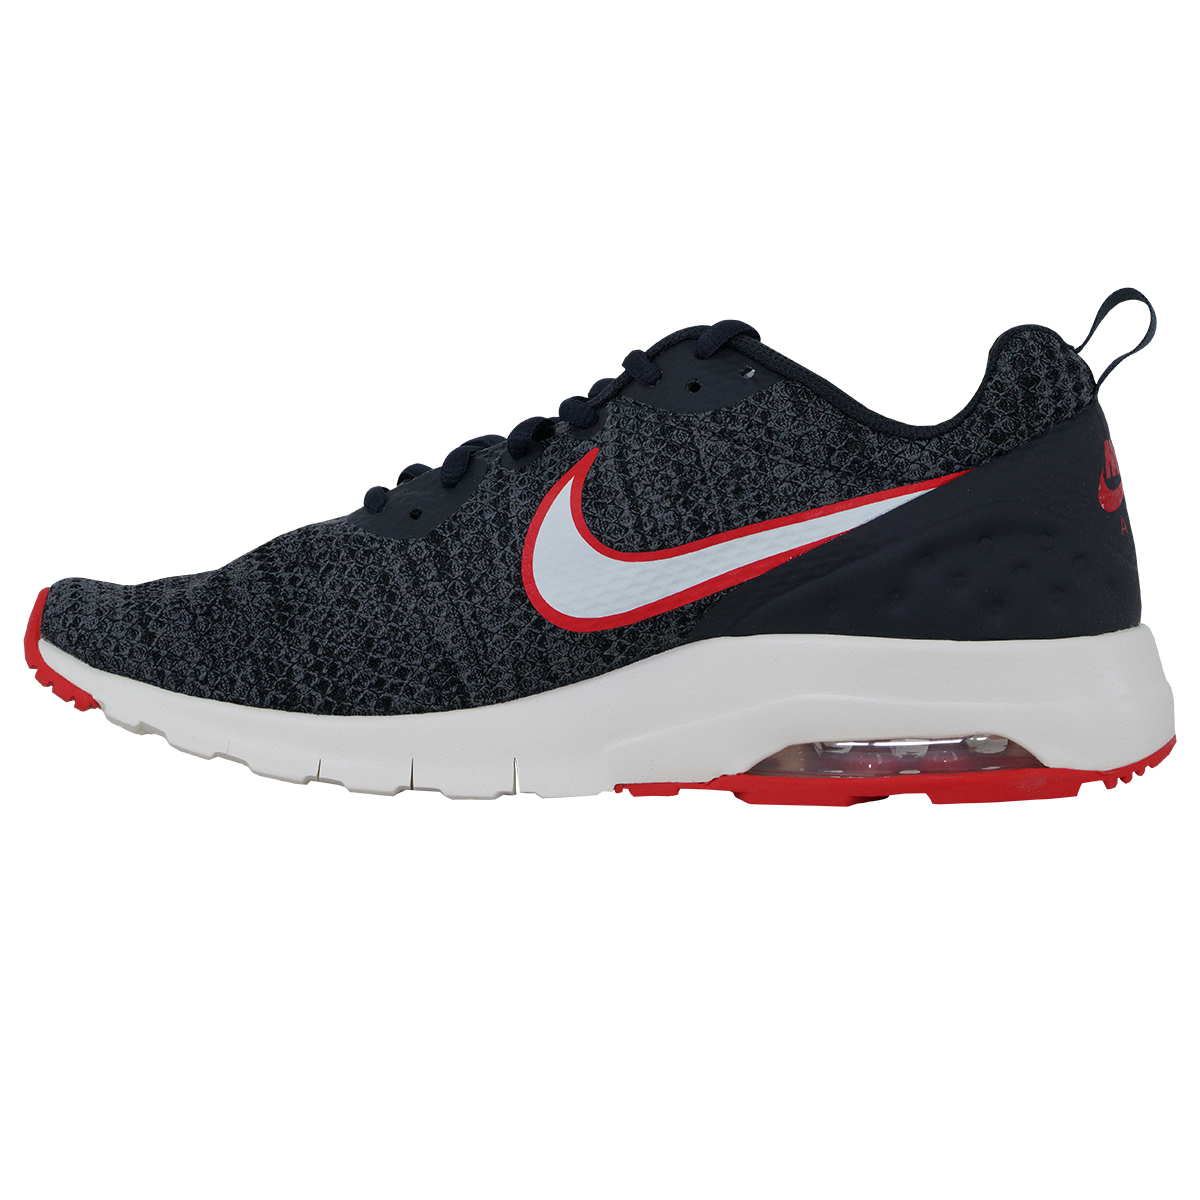 Details about Nike Men's Air Max Motion Low Cross Trainer Shoes